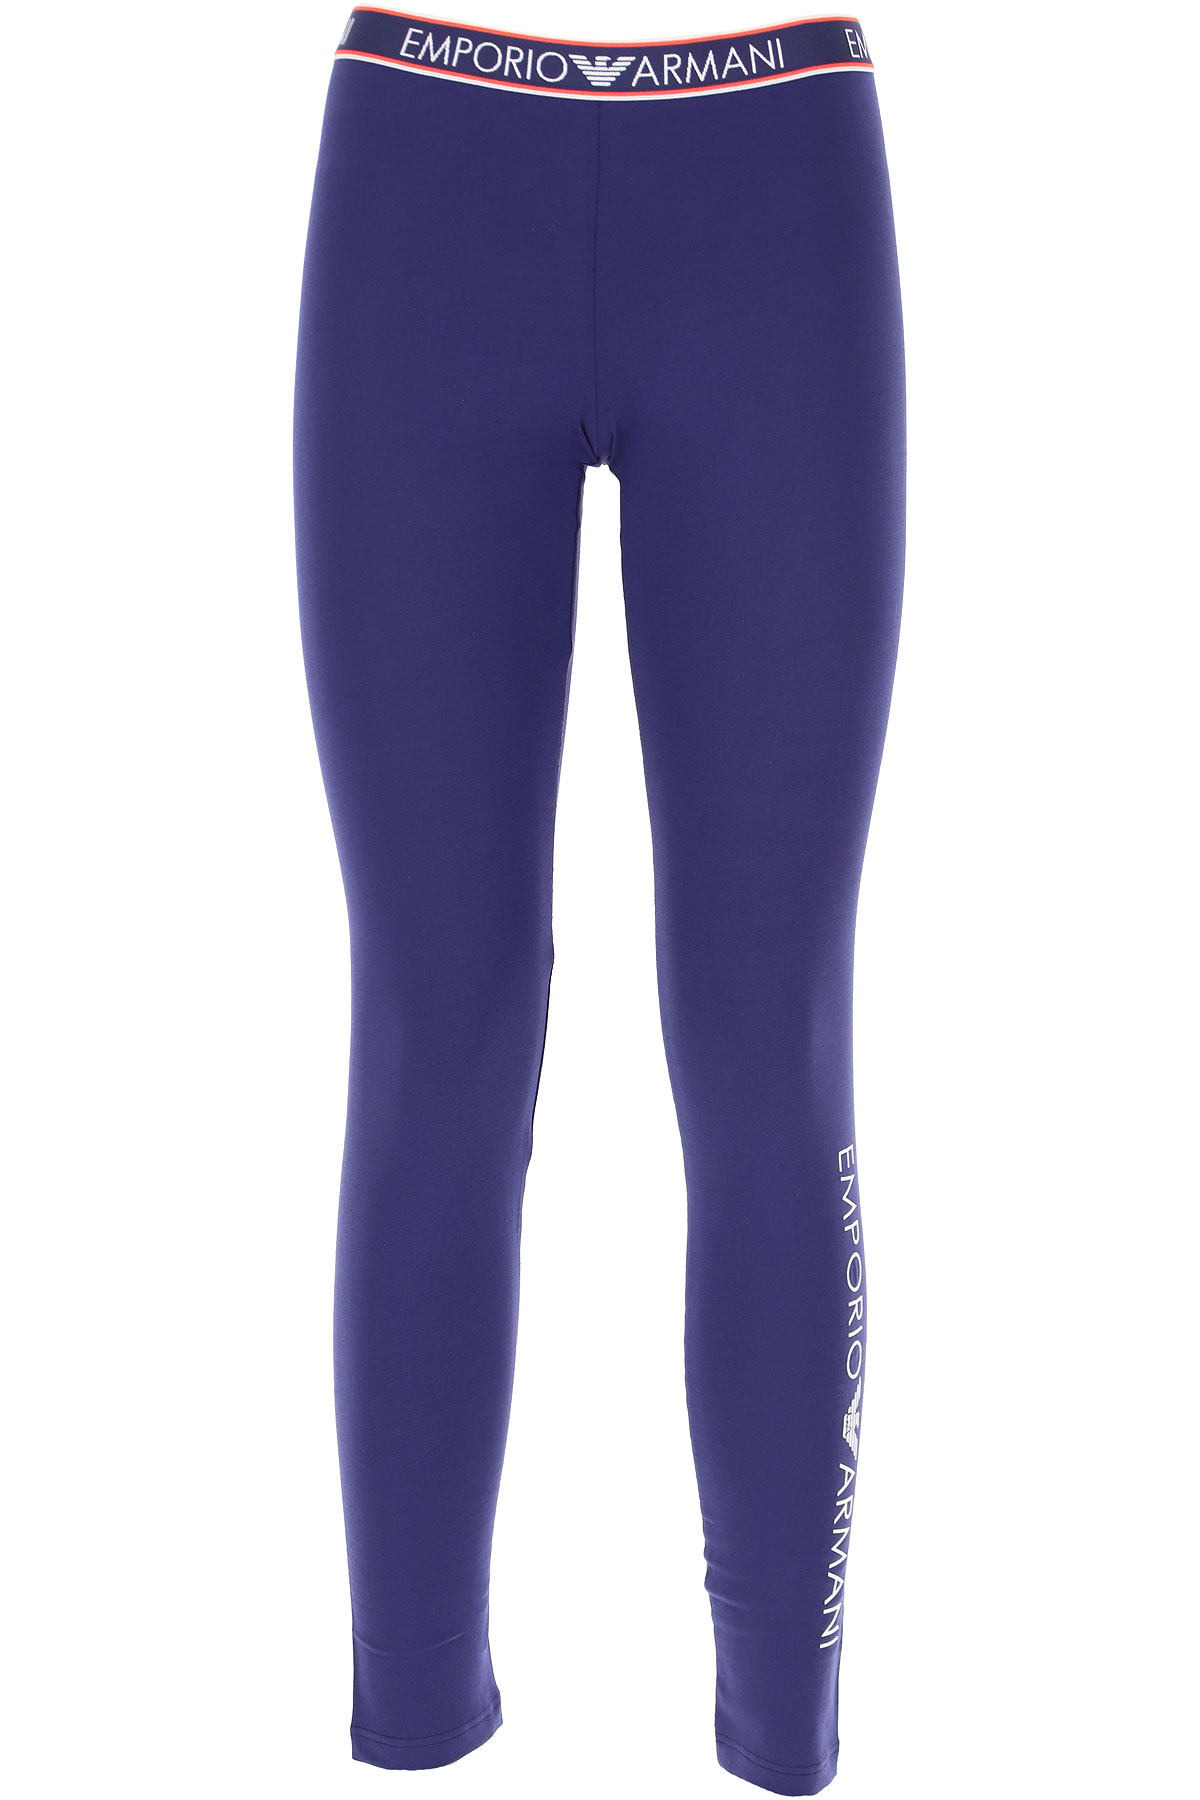 Emporio Armani Women's Sportswear for Gym Workouts and Running On Sale, Blue, Cotton, 2019, 2 4 6